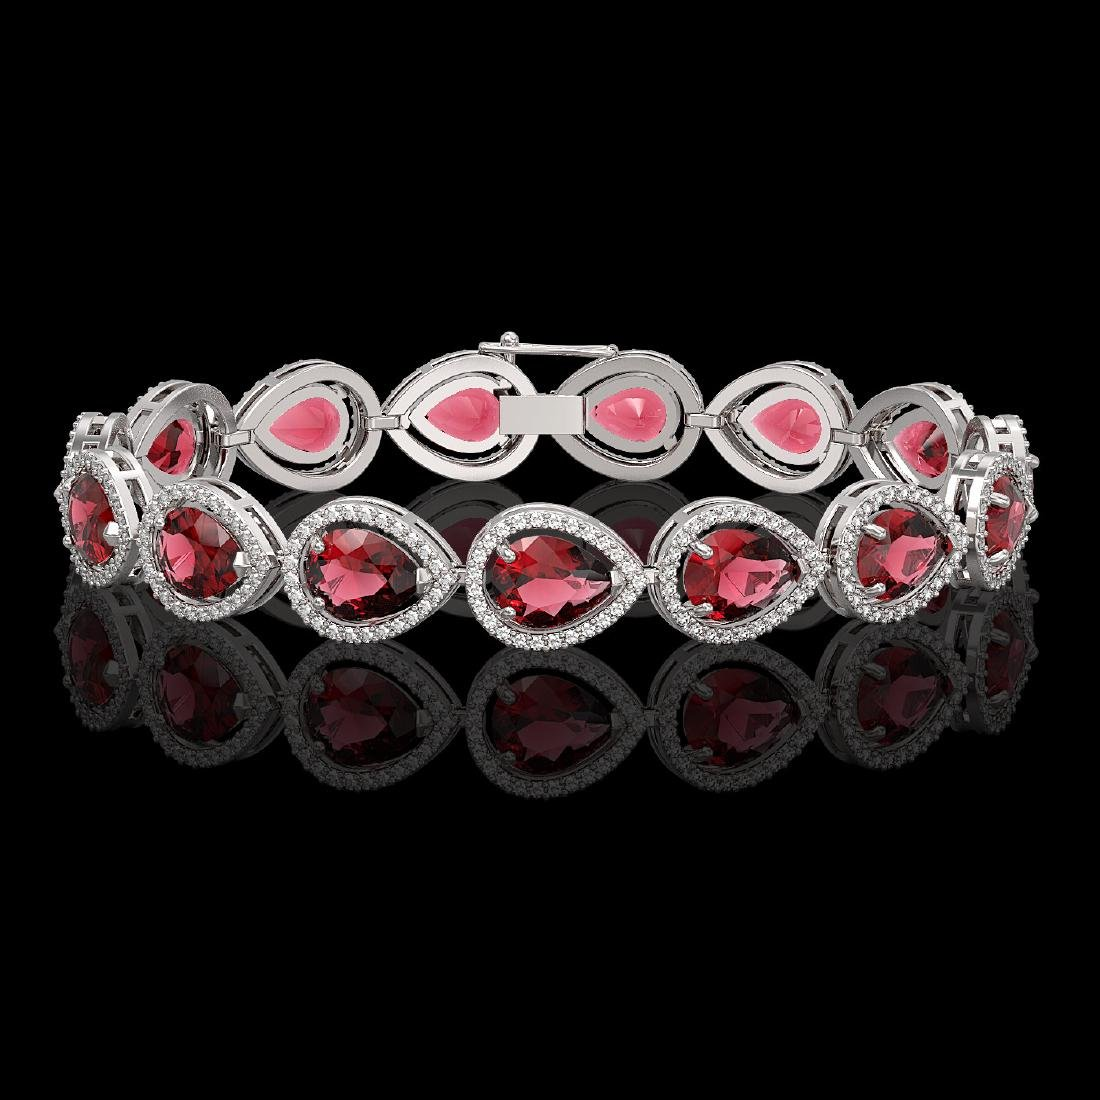 19.7 CTW Tourmaline & Diamond Halo Bracelet 10K White